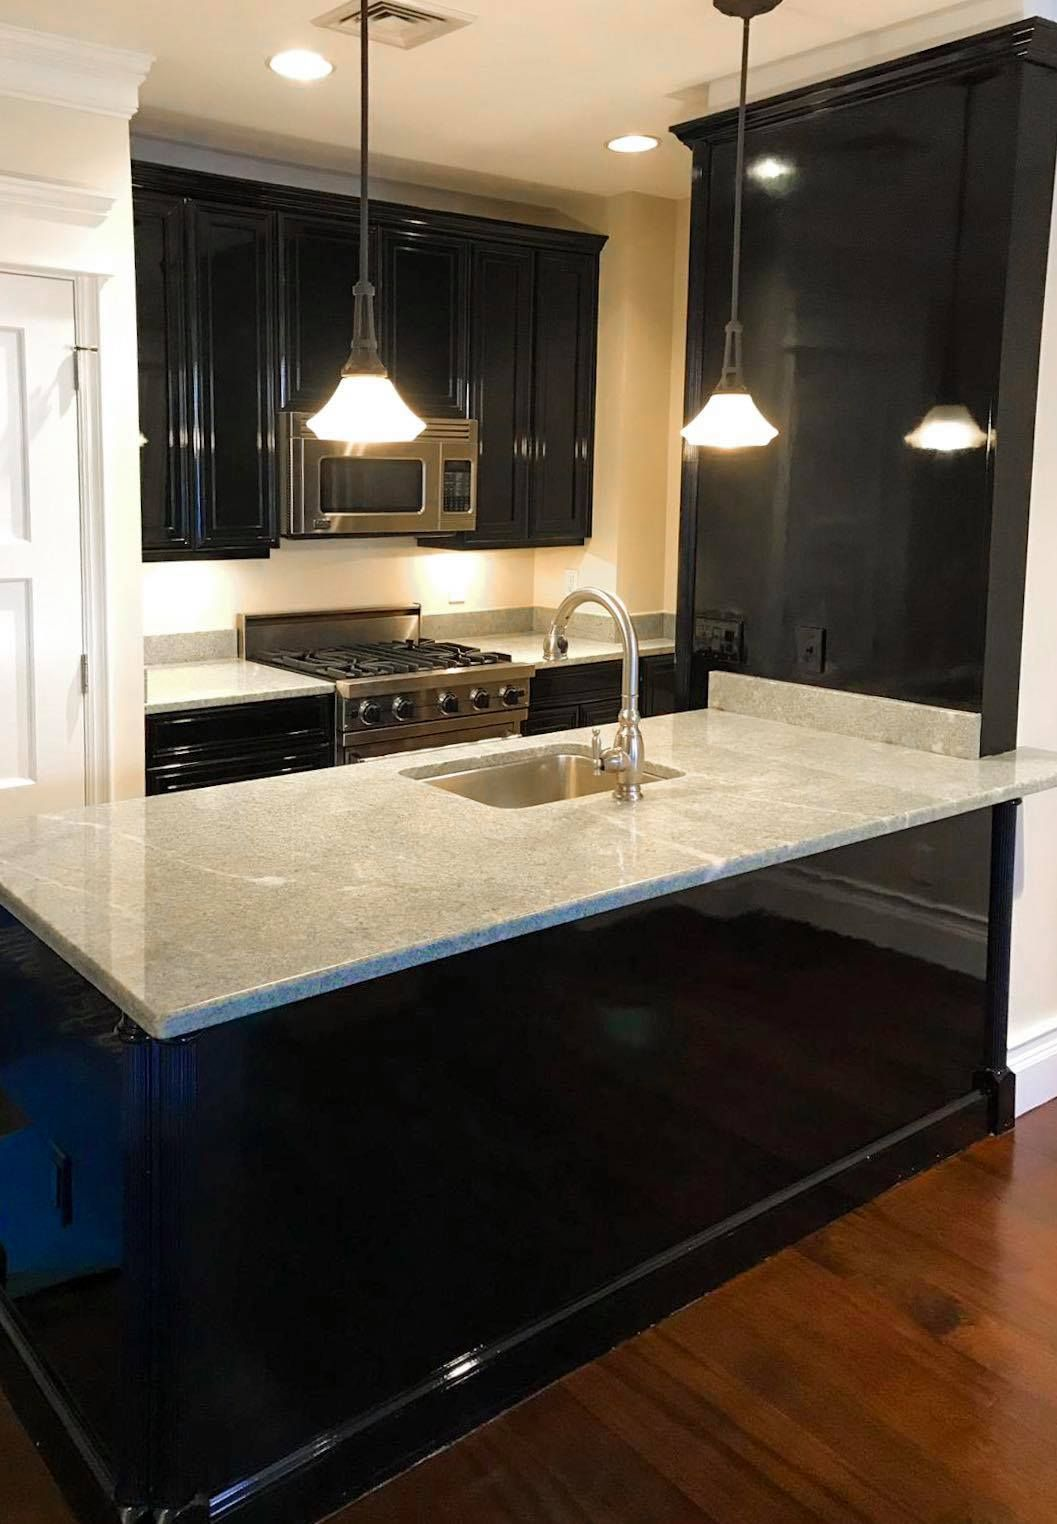 Kitchen Cabinets Painted in Boston (MA) | Painting kitchen ...